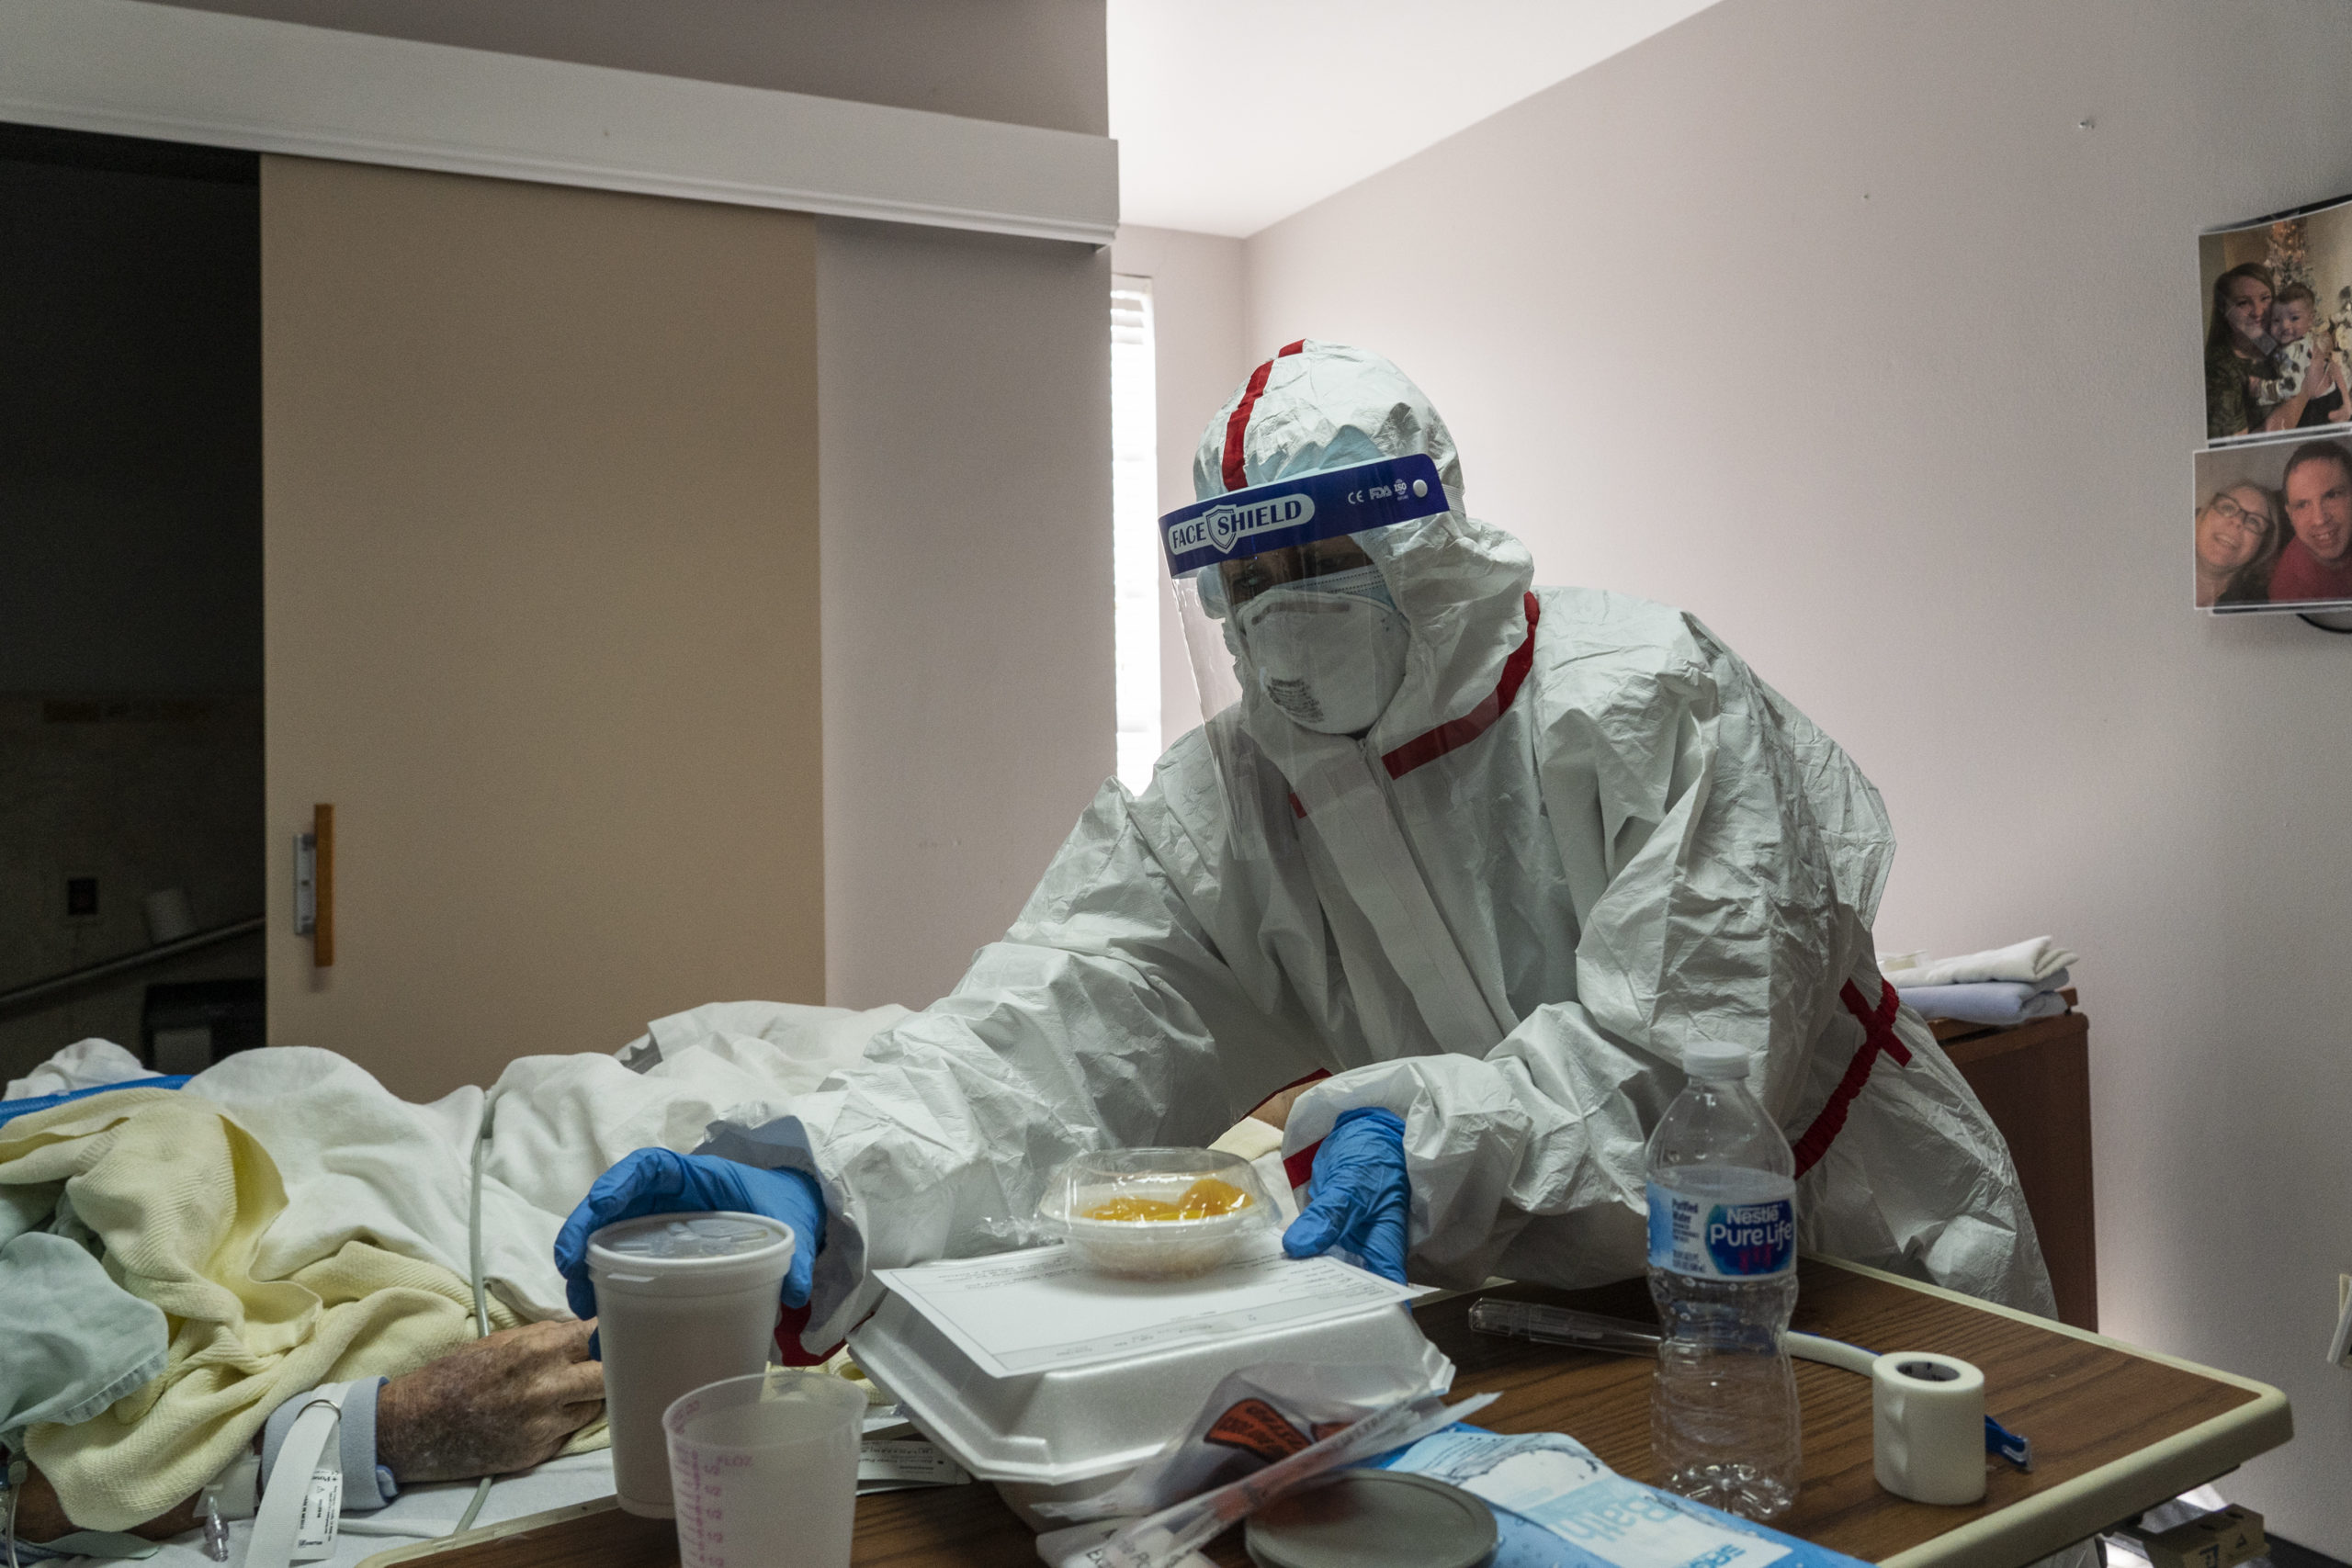 A medical staff member serves lunch in the coronavirus intensive care unit on Christmas Day at the United Memorial Medical Center in Houston, Texas. (Go Nakamura/Getty Images)